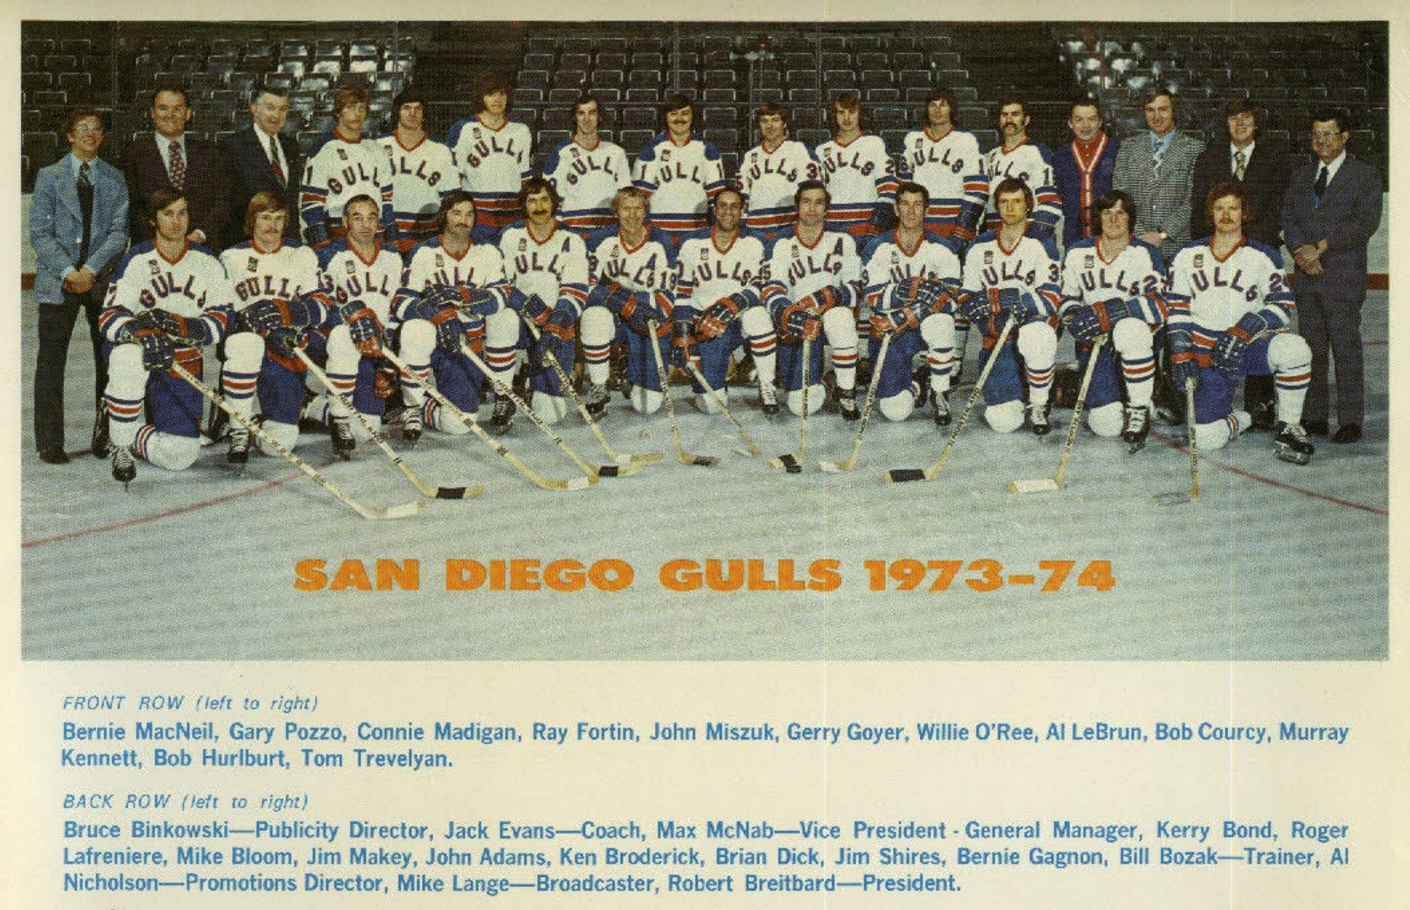 San Diego Gulls 1973 Western Hockey League Hockeygods